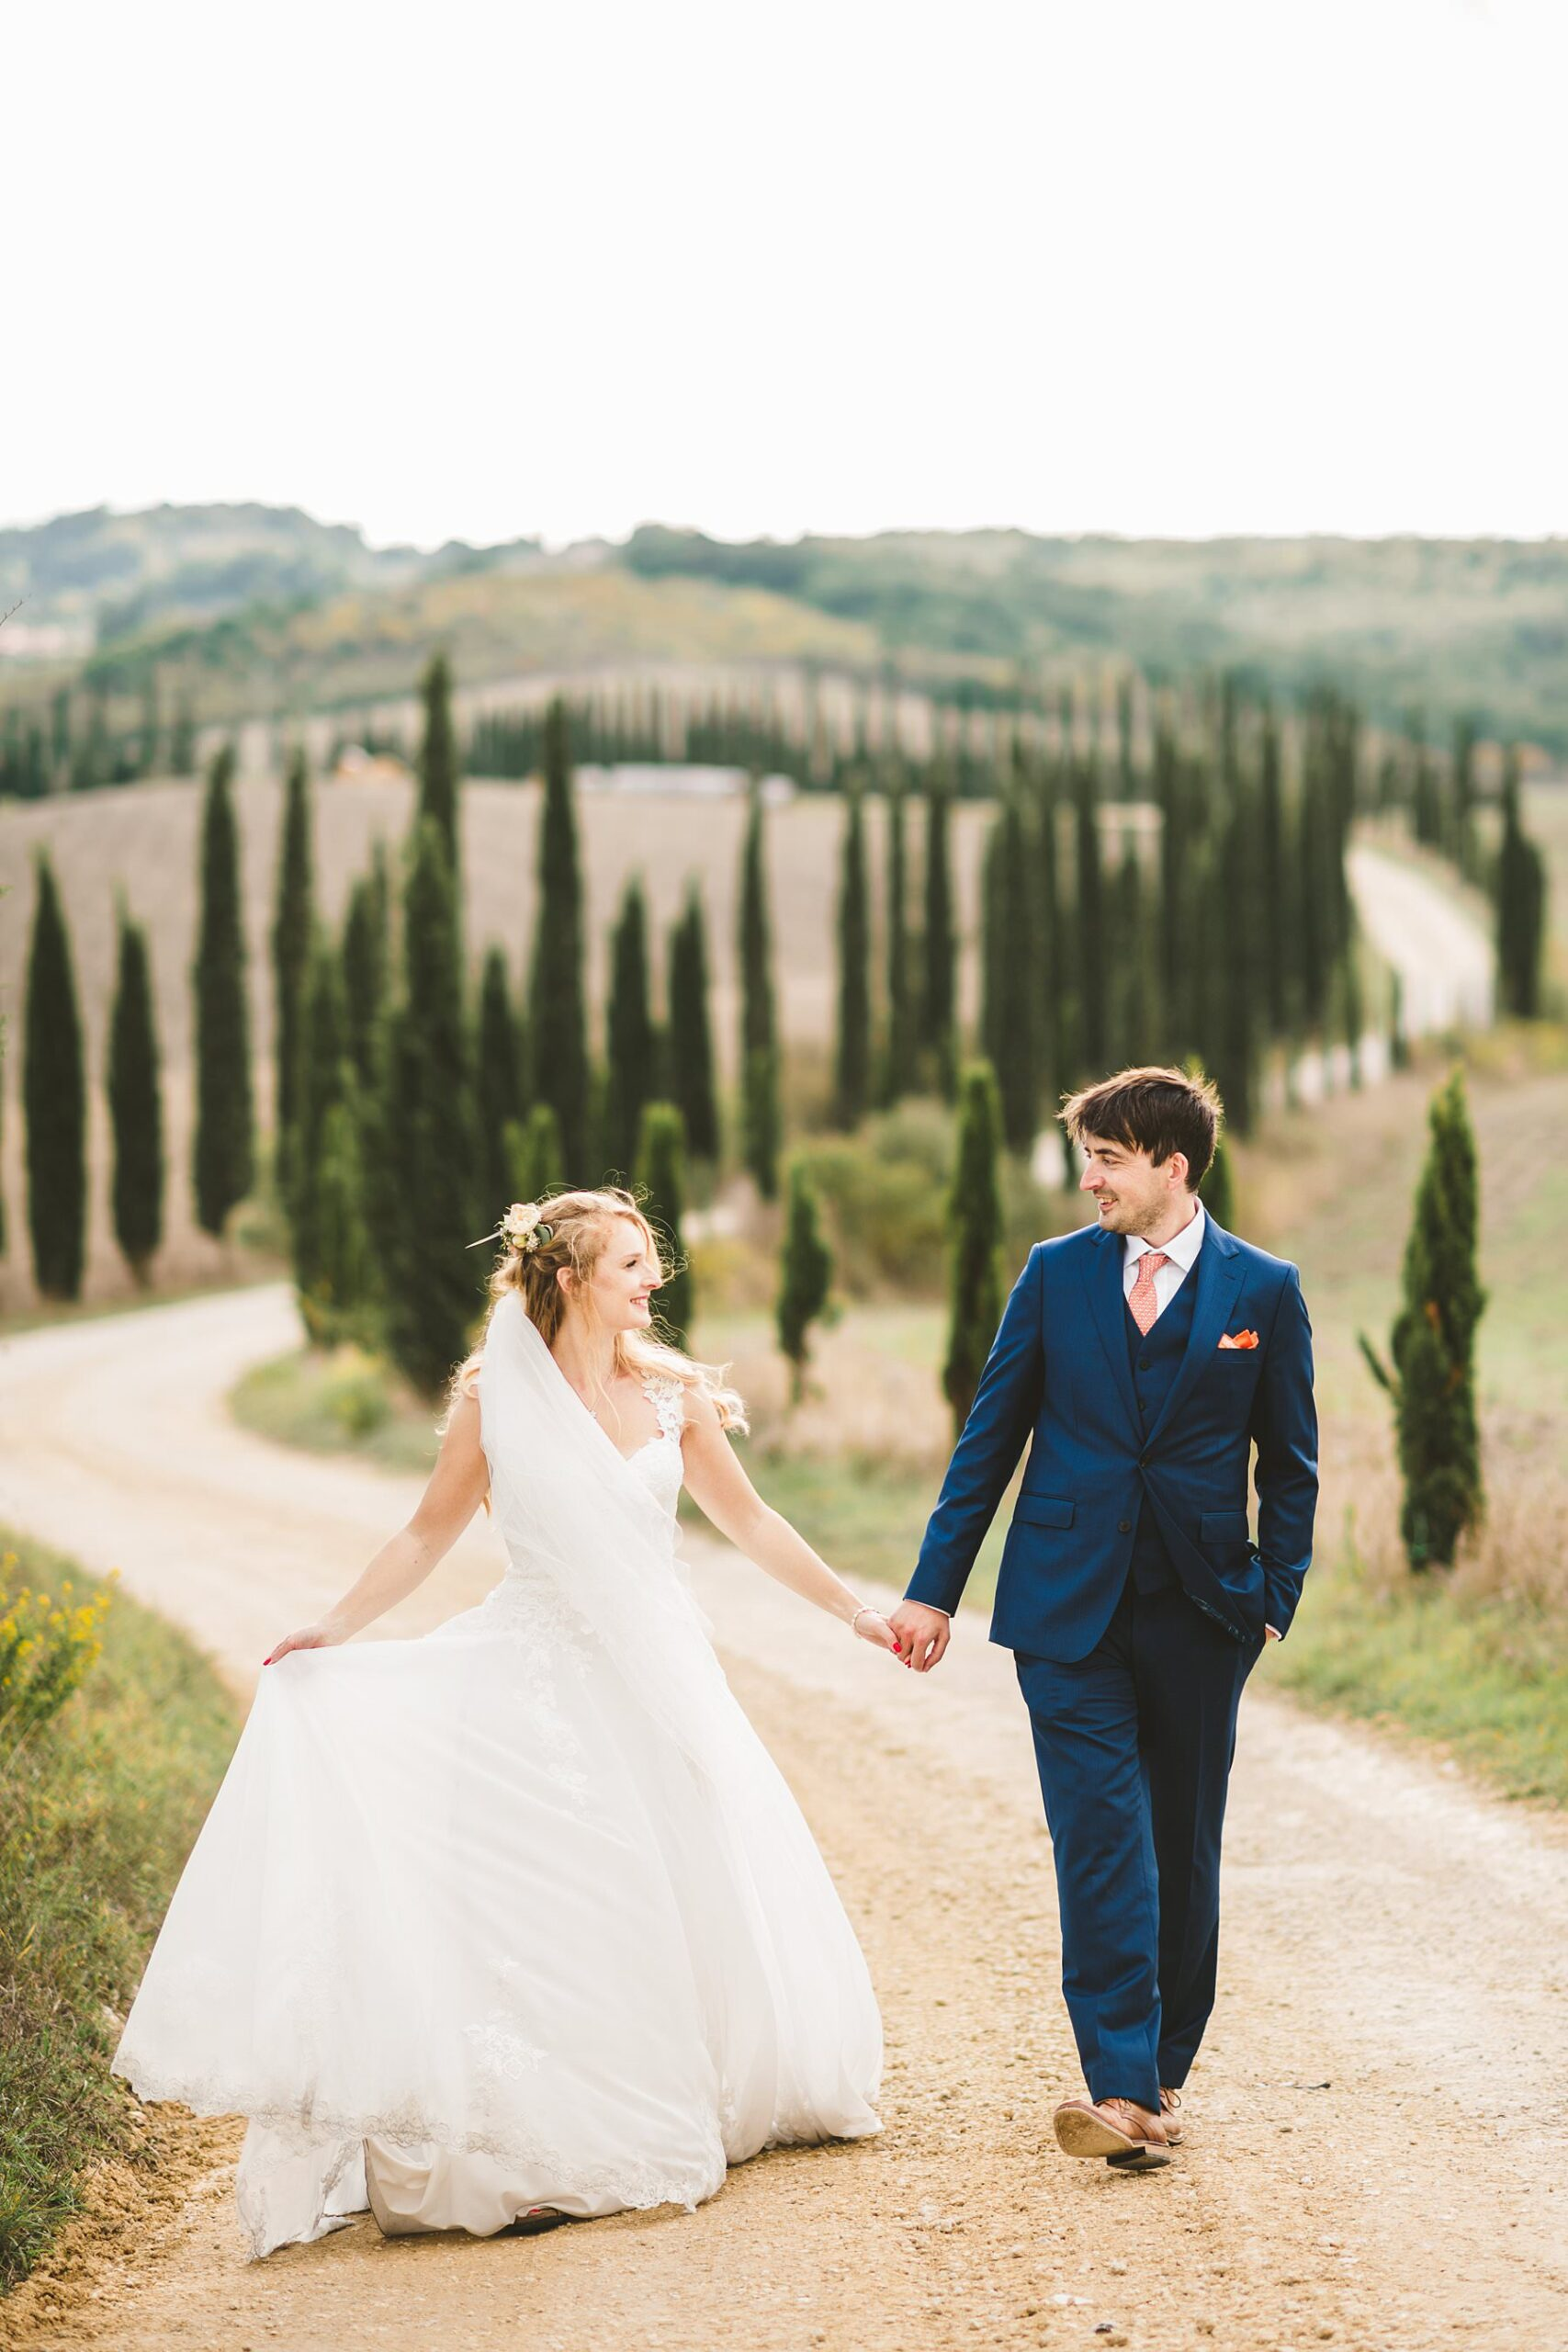 Destination elopement wedding in Tuscany. Bride and groom portrait walk tour surrounded by the stunning countryside views and cypresses road